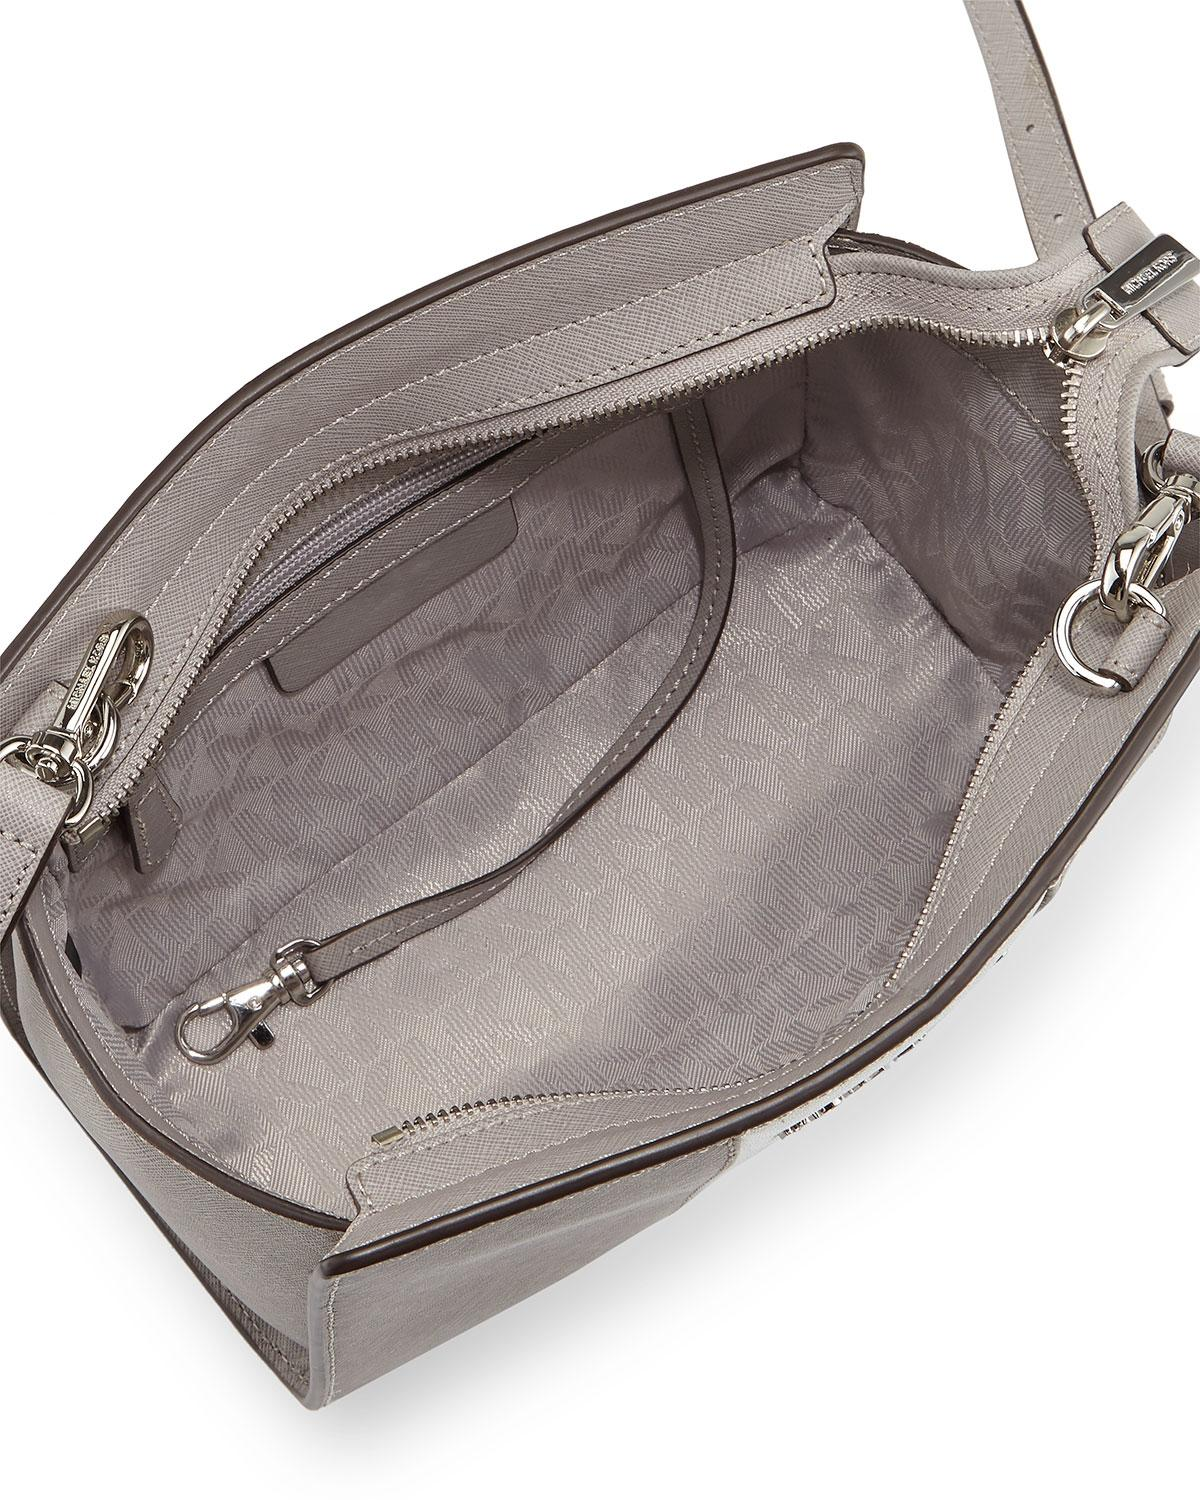 ac9cafecf052 ... real michael michael kors selma striped saffiano leather crossbody  pearl grey silver messenger bag.